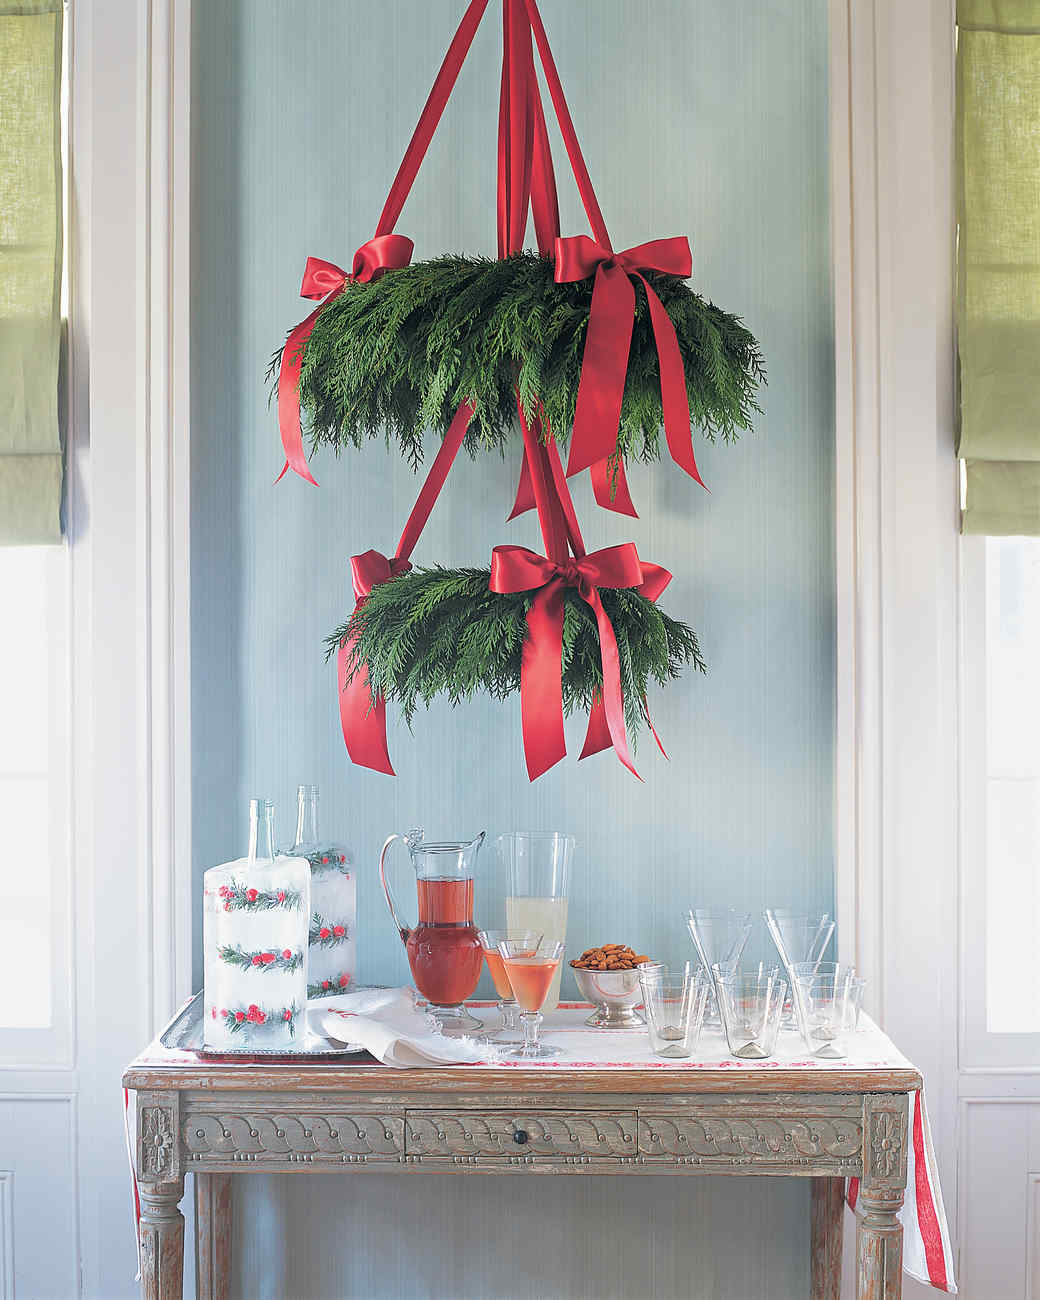 Holiday Home Design Ideas: Quick Christmas Decorating Ideas